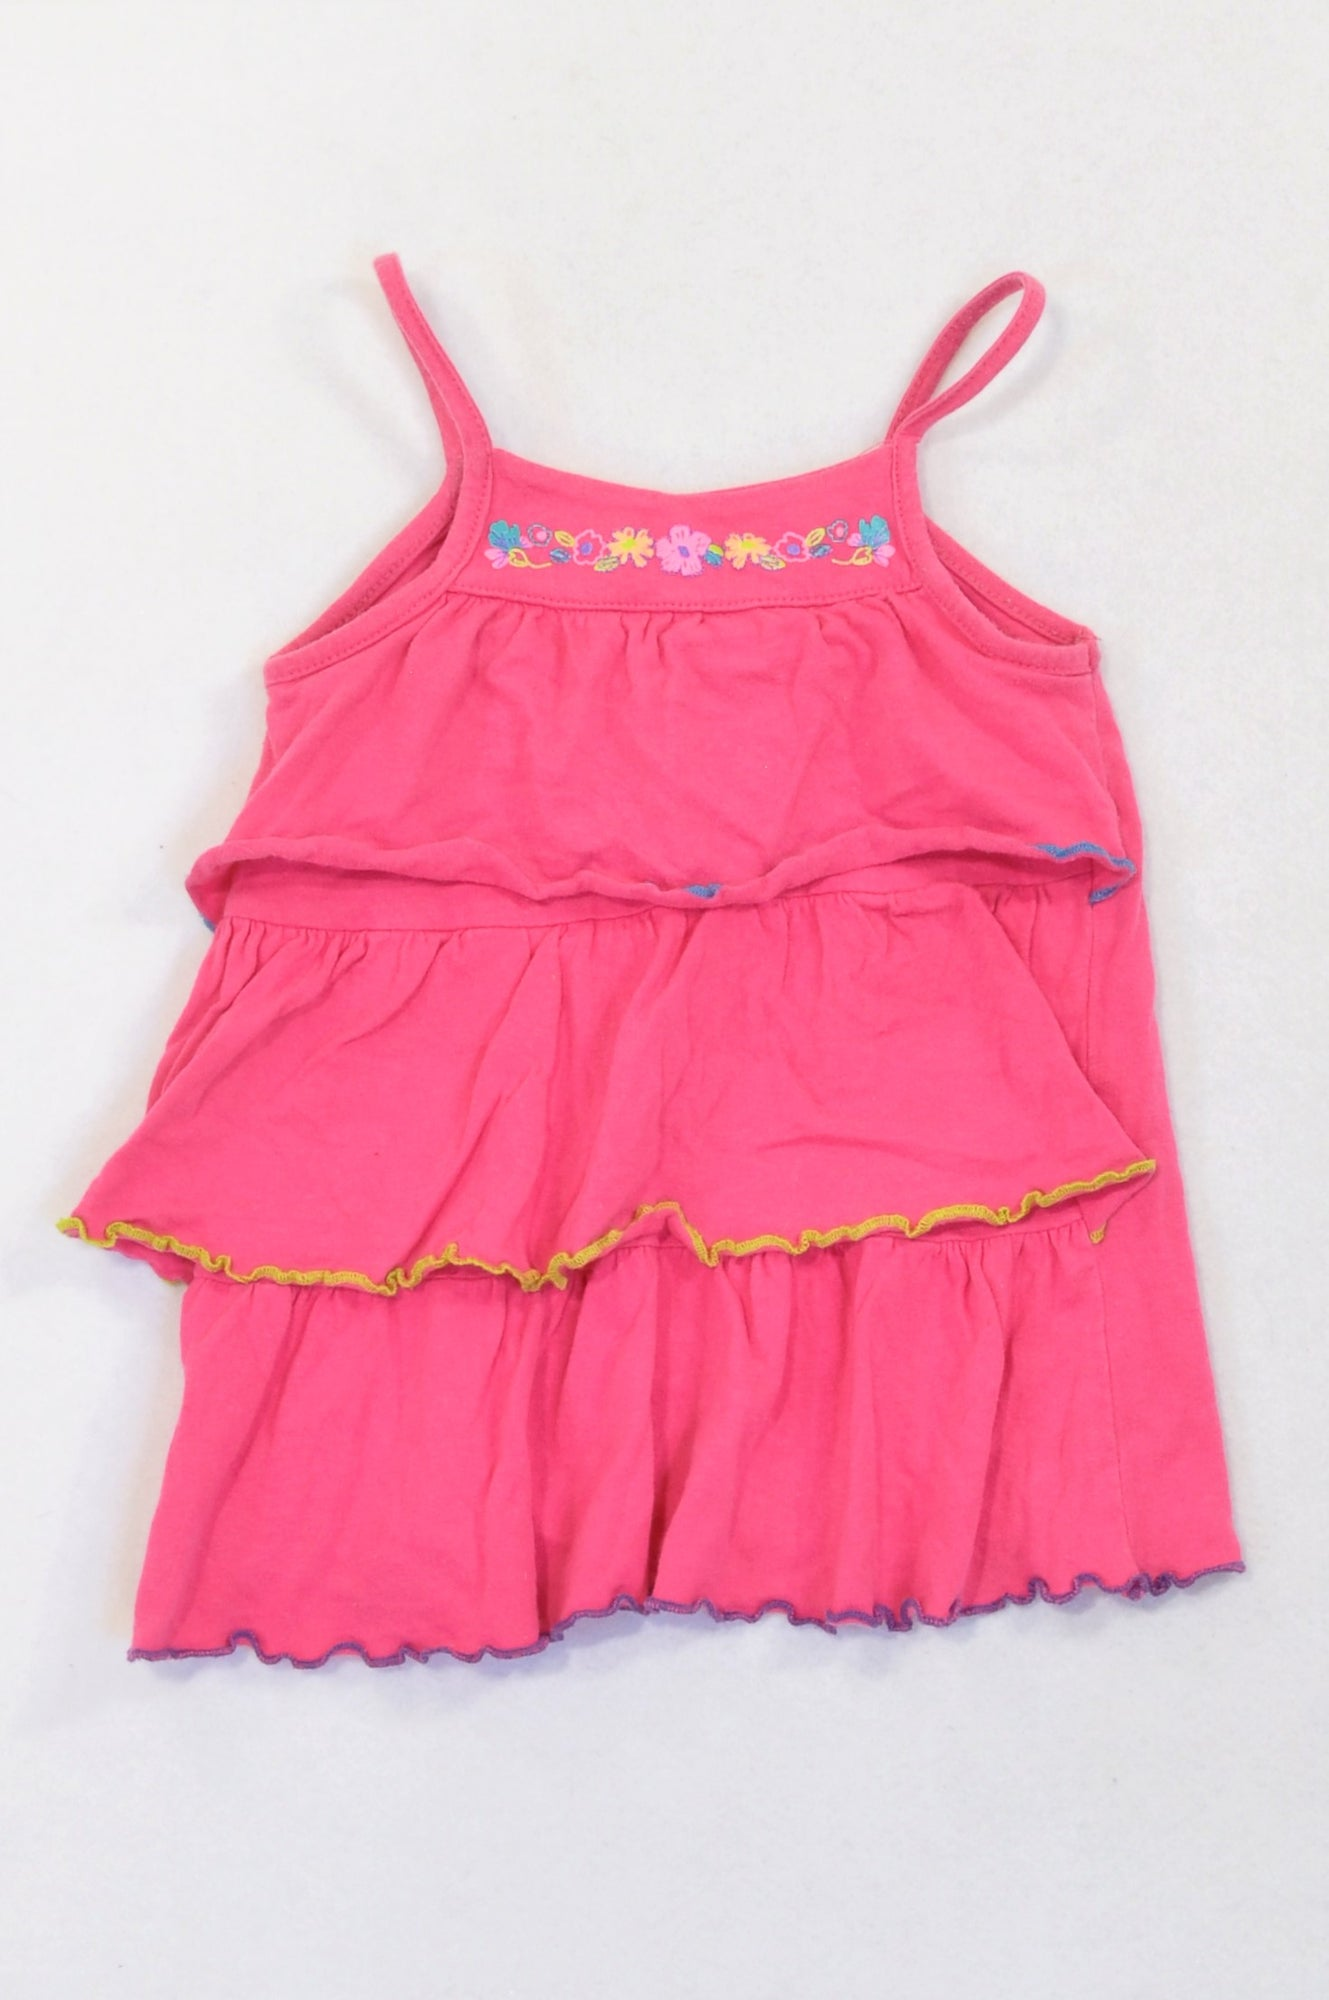 Edgars Pink Frill Flower Tank Top Girls 12-18 months